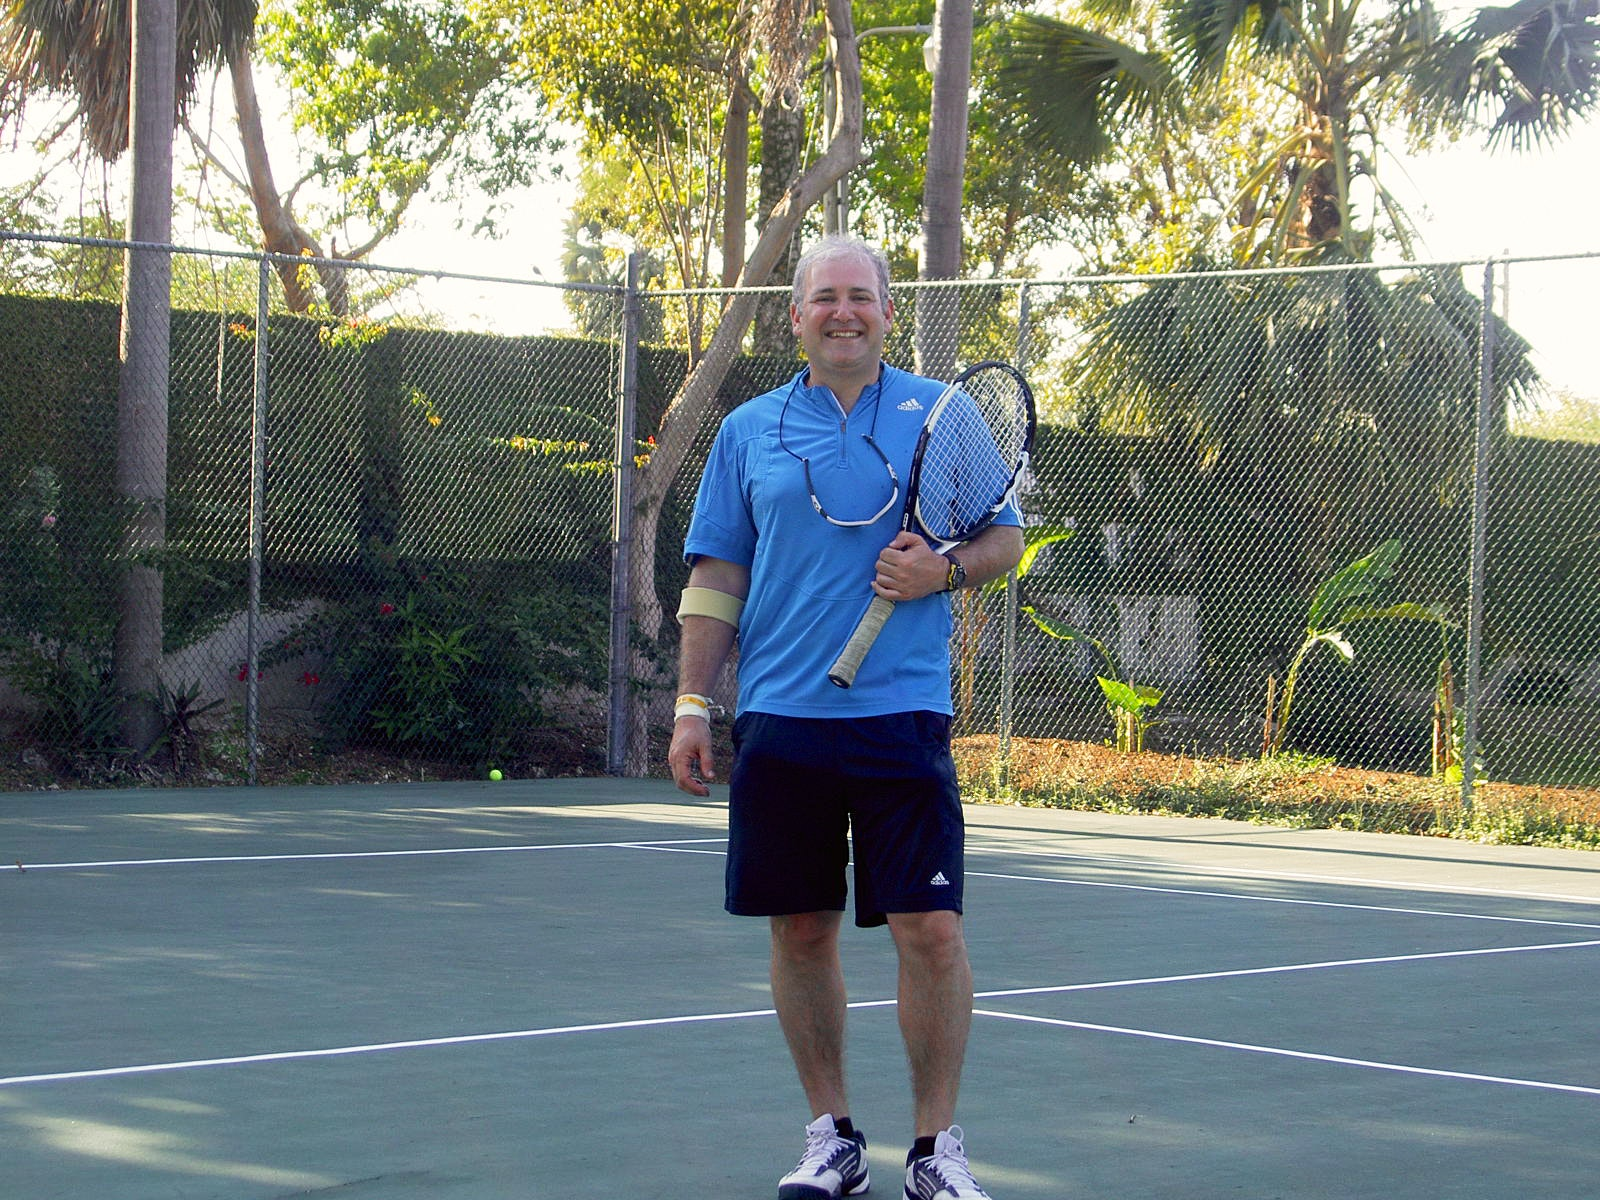 Jacques E. teaches tennis lessons in Dix Hills, NY